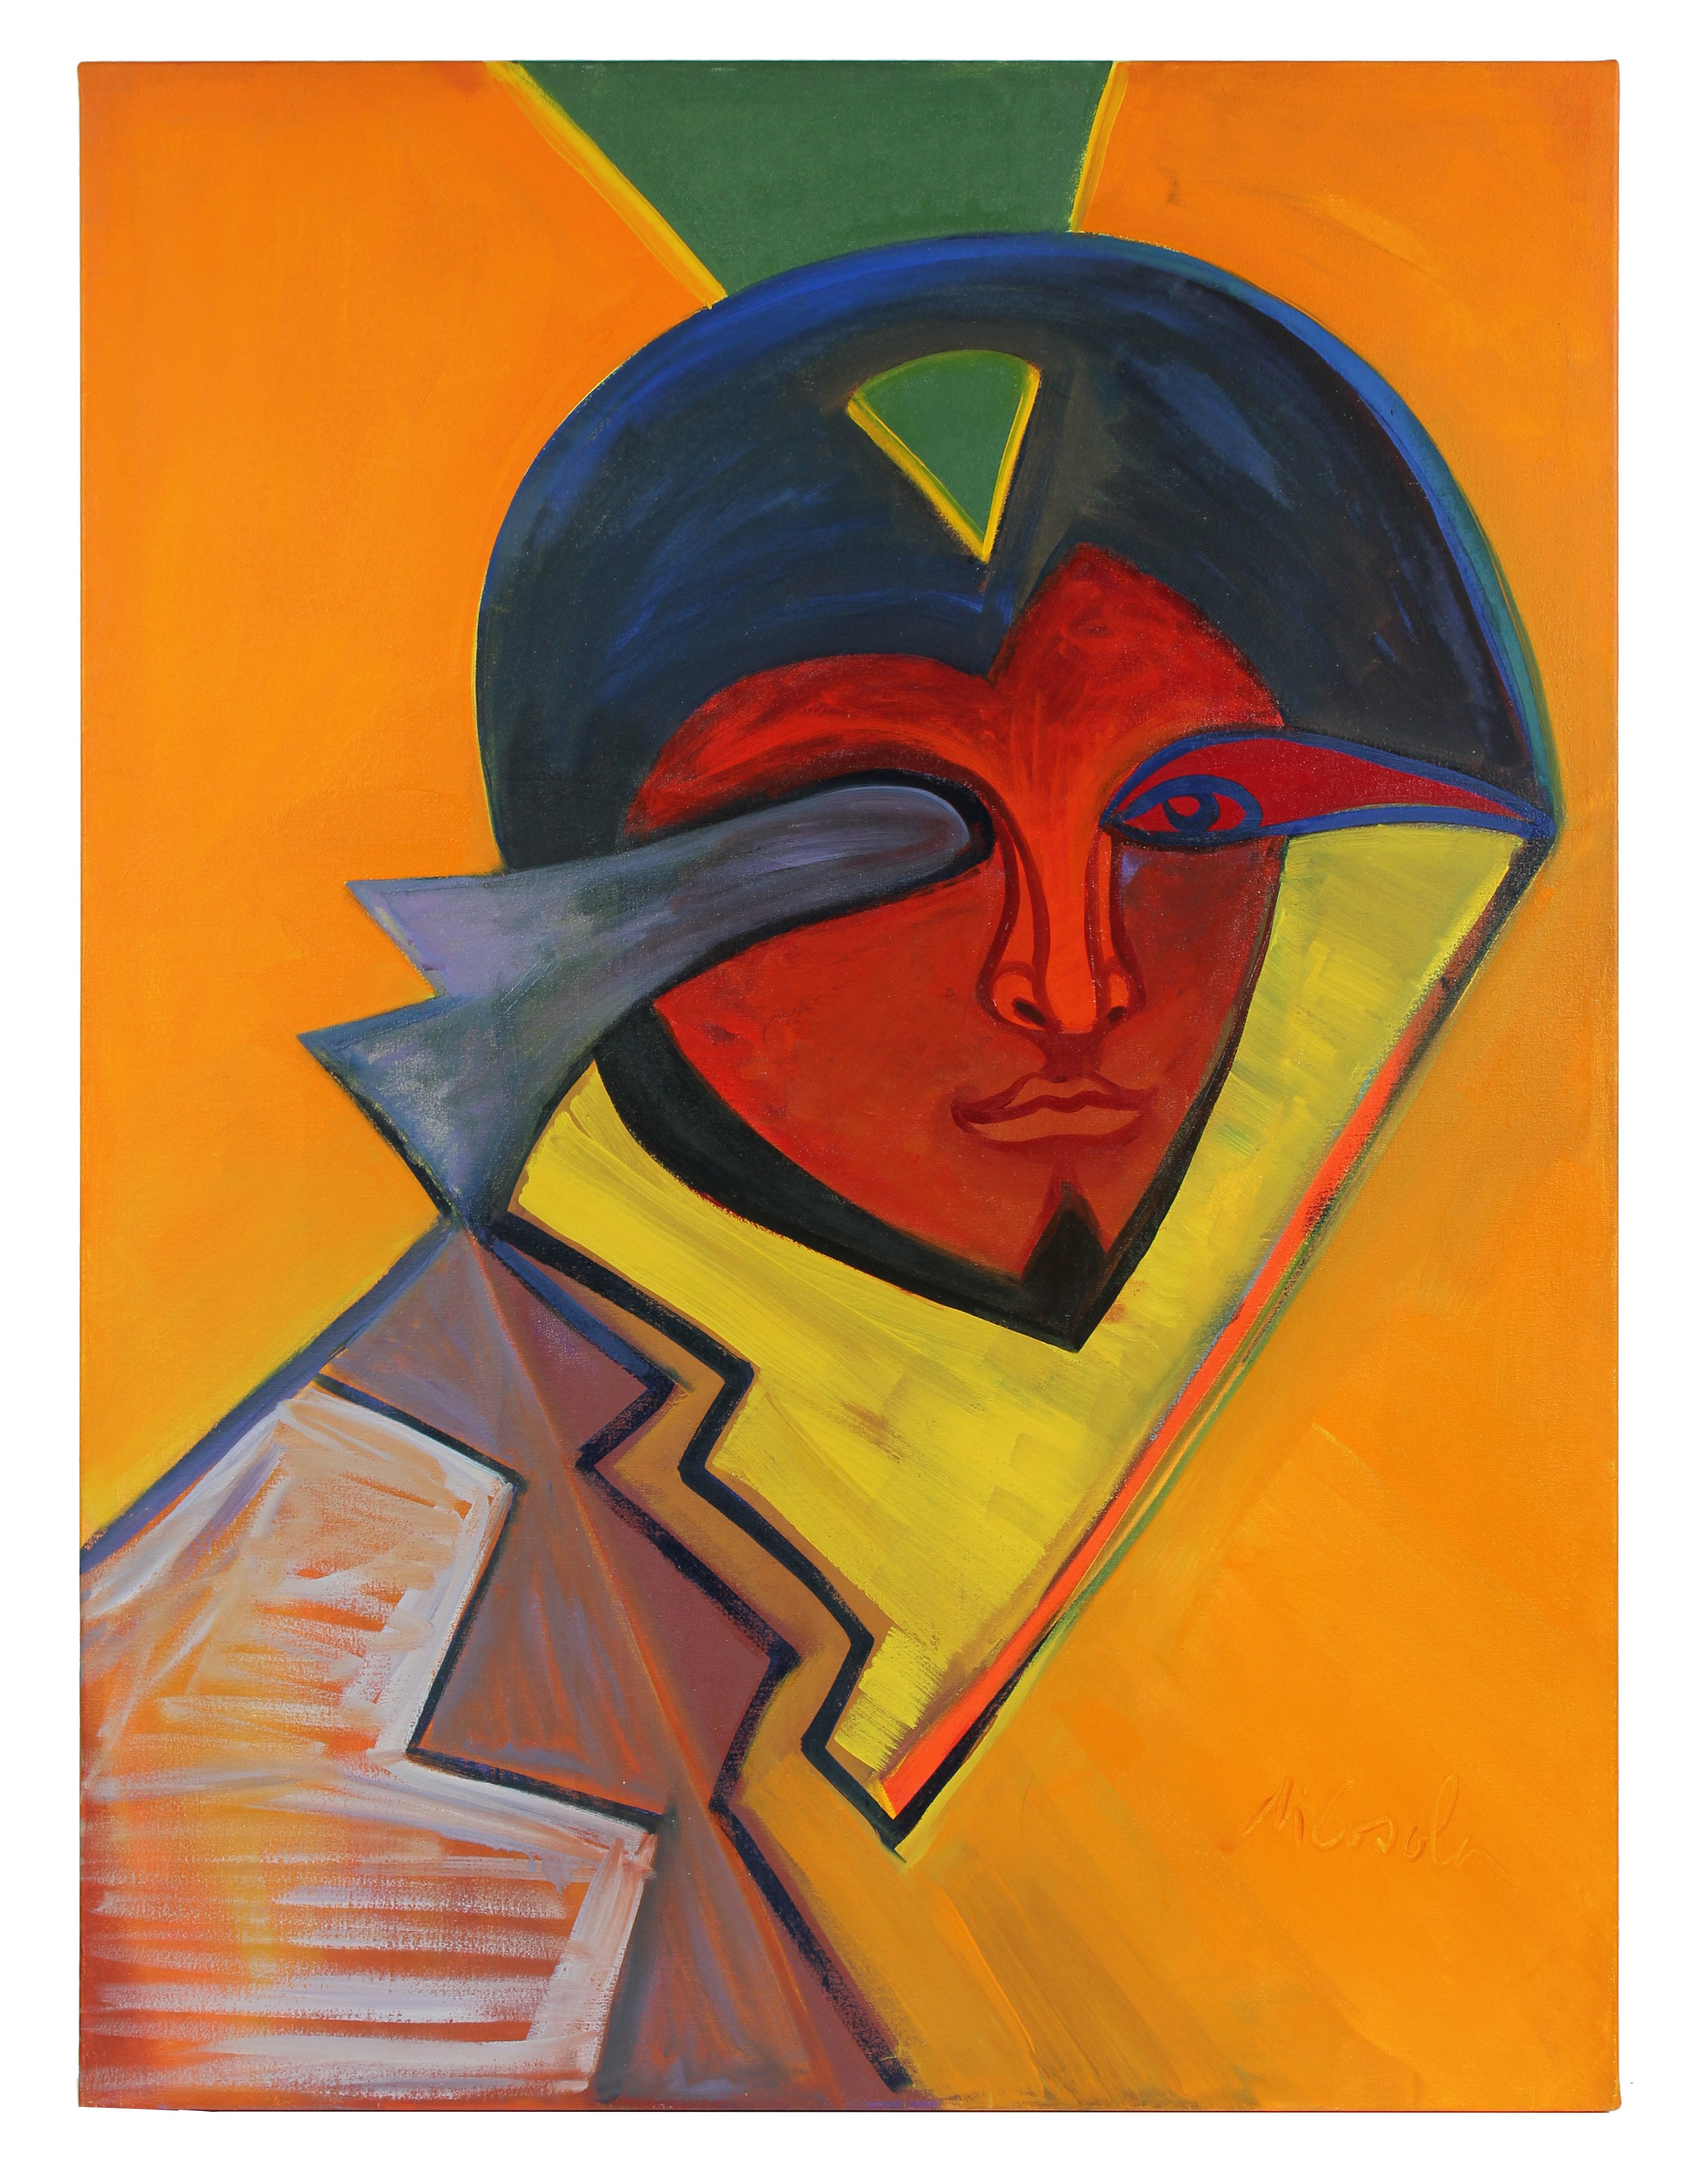 Large Colorful Abstracted Portrait in Oil on Canvas, 20th Century